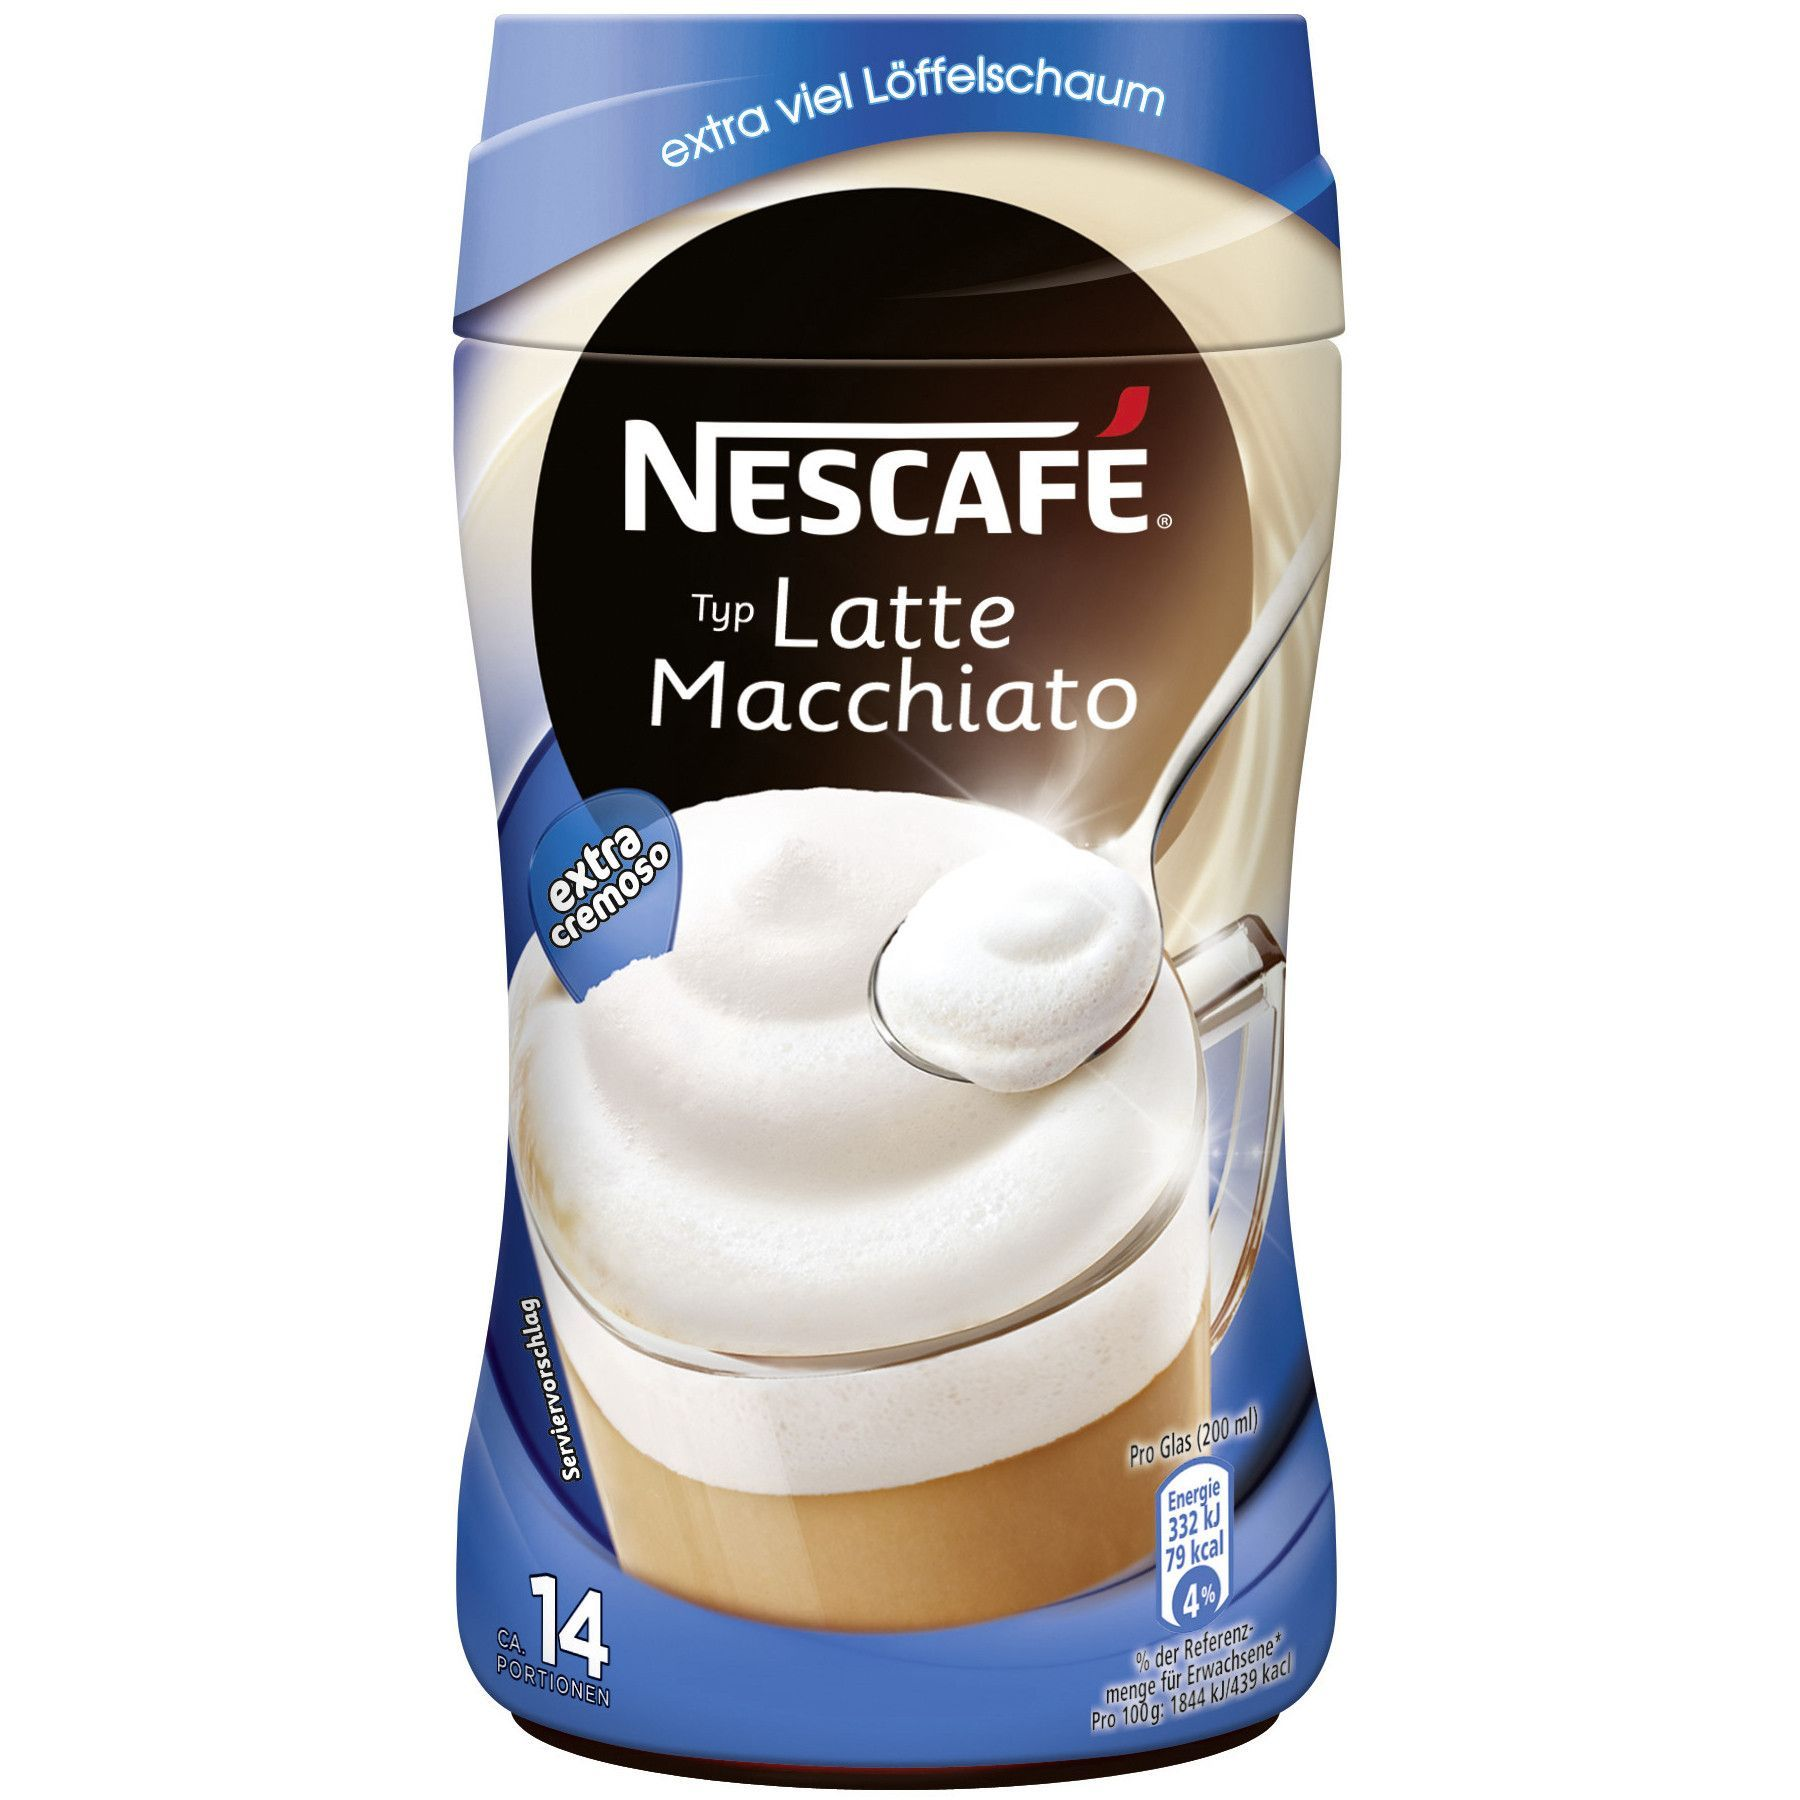 in USA- Nescafe Latte Macchiato EXTRA CREAMY -1 can - 14 portions ...